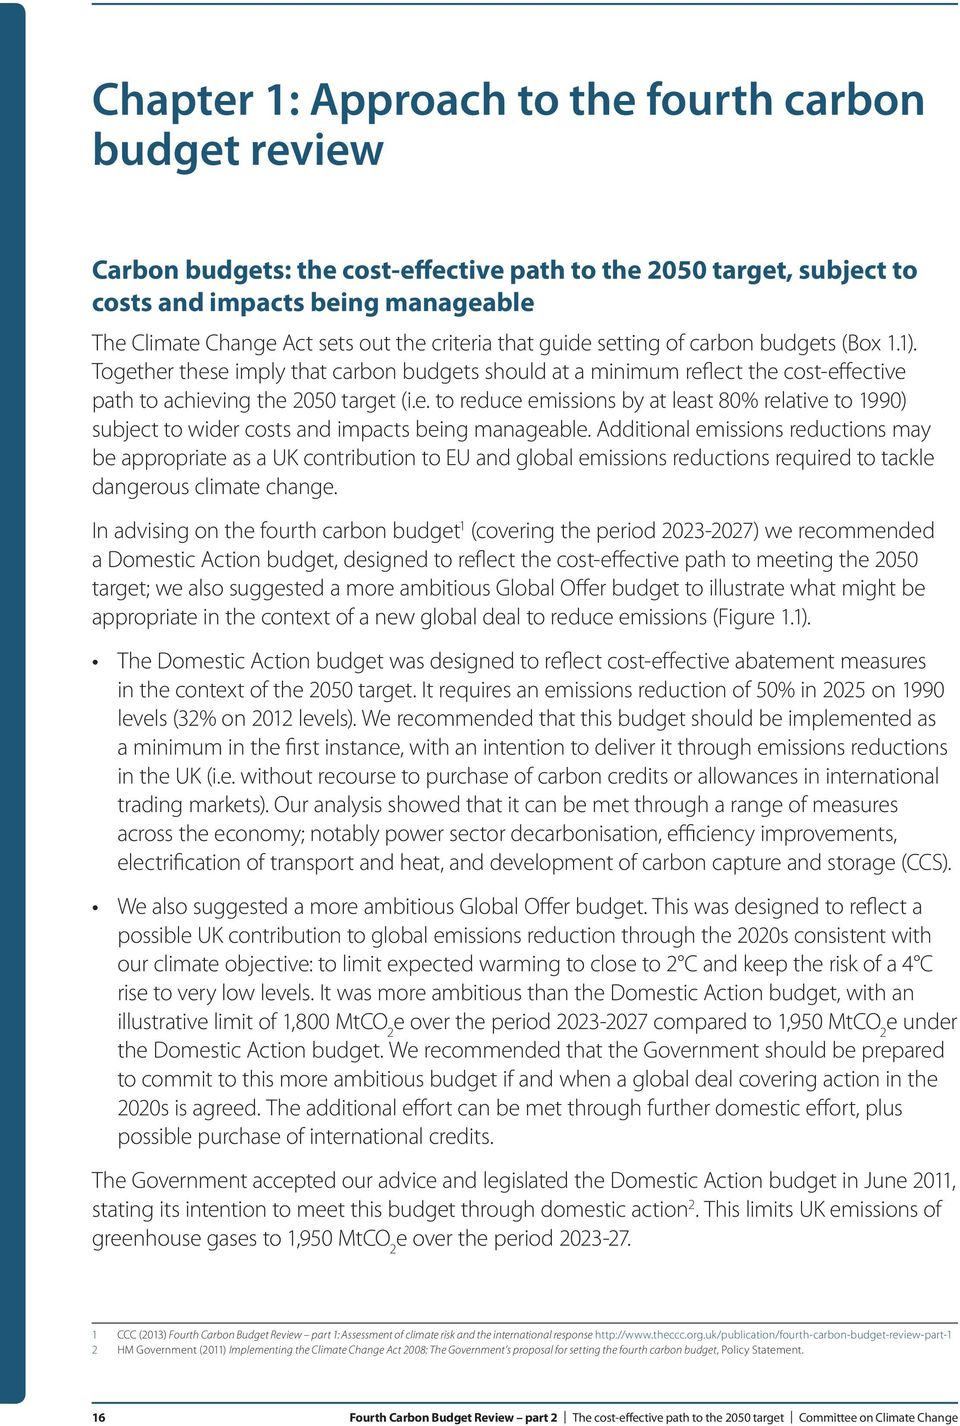 Additional emissions reductions may be appropriate as a UK contribution to EU and global emissions reductions required to tackle dangerous climate change.